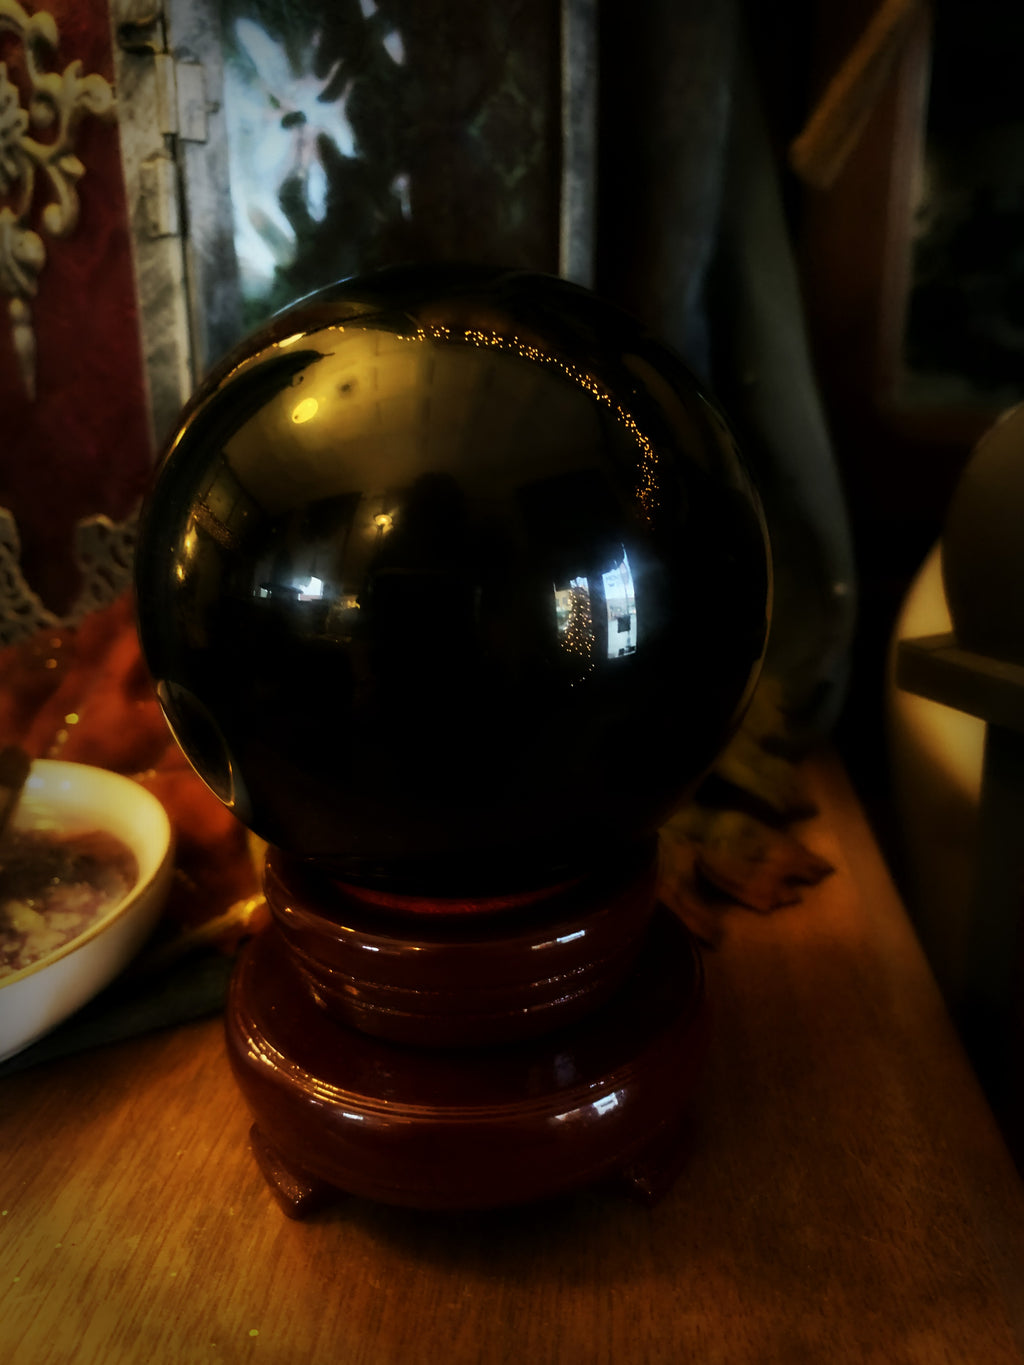 OBSIDIAN GLASS GAZING GLOBE ~ For Scrying and Spirit Connection